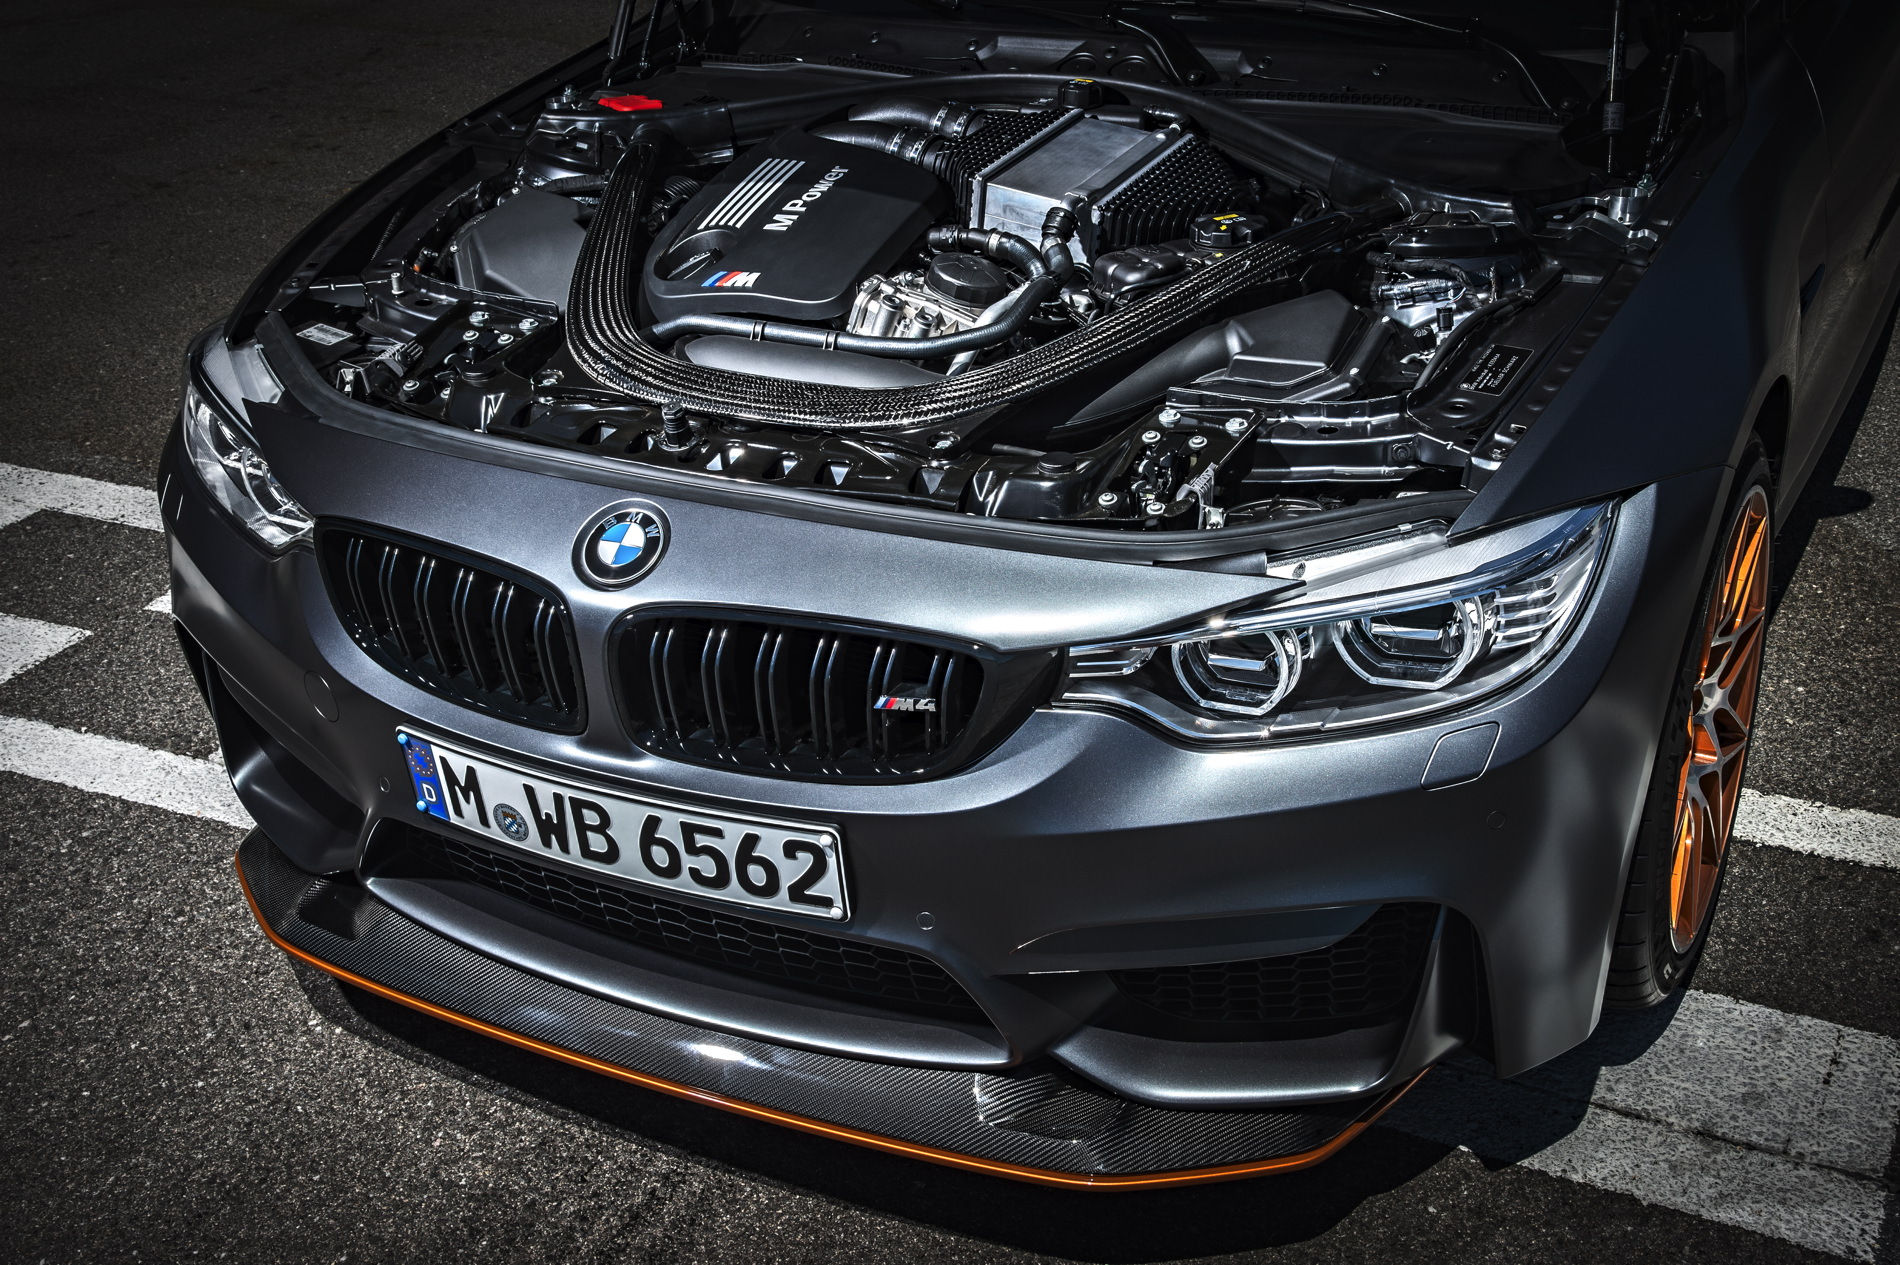 Uk Market Gets 30 Bmw M4 Gts Priced At 121 770